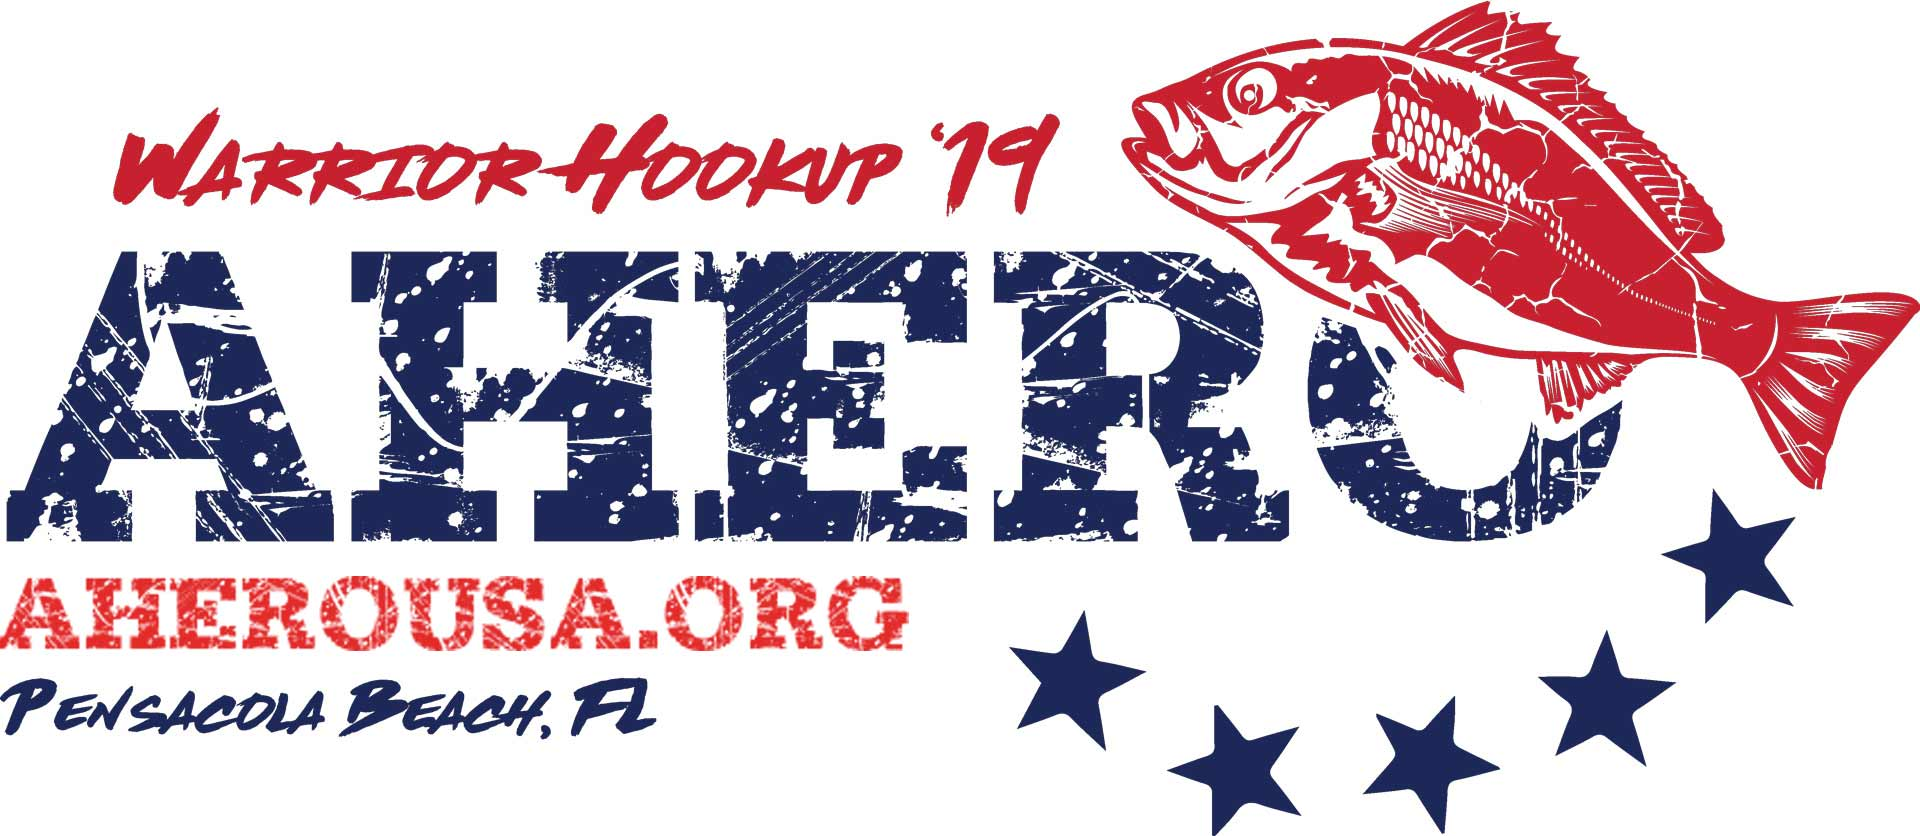 2019 AHERO Warrior Hook-Up Pensacola